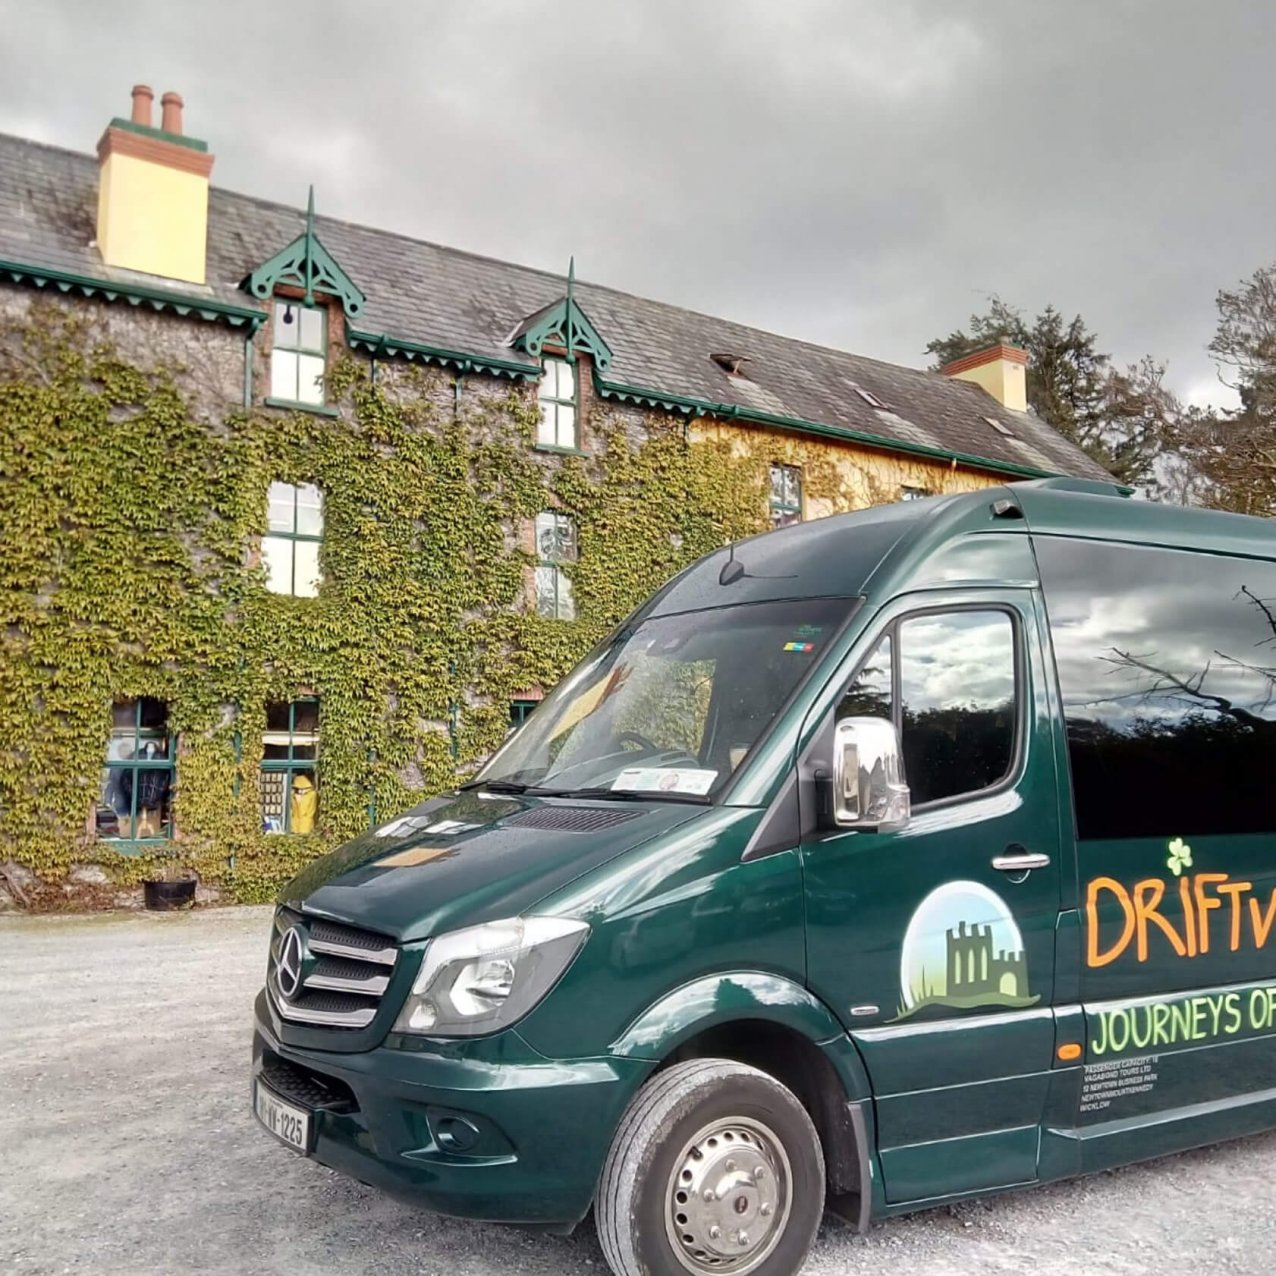 Driftwood tours Drifter tour vehicle outside a leafy building in Ireland